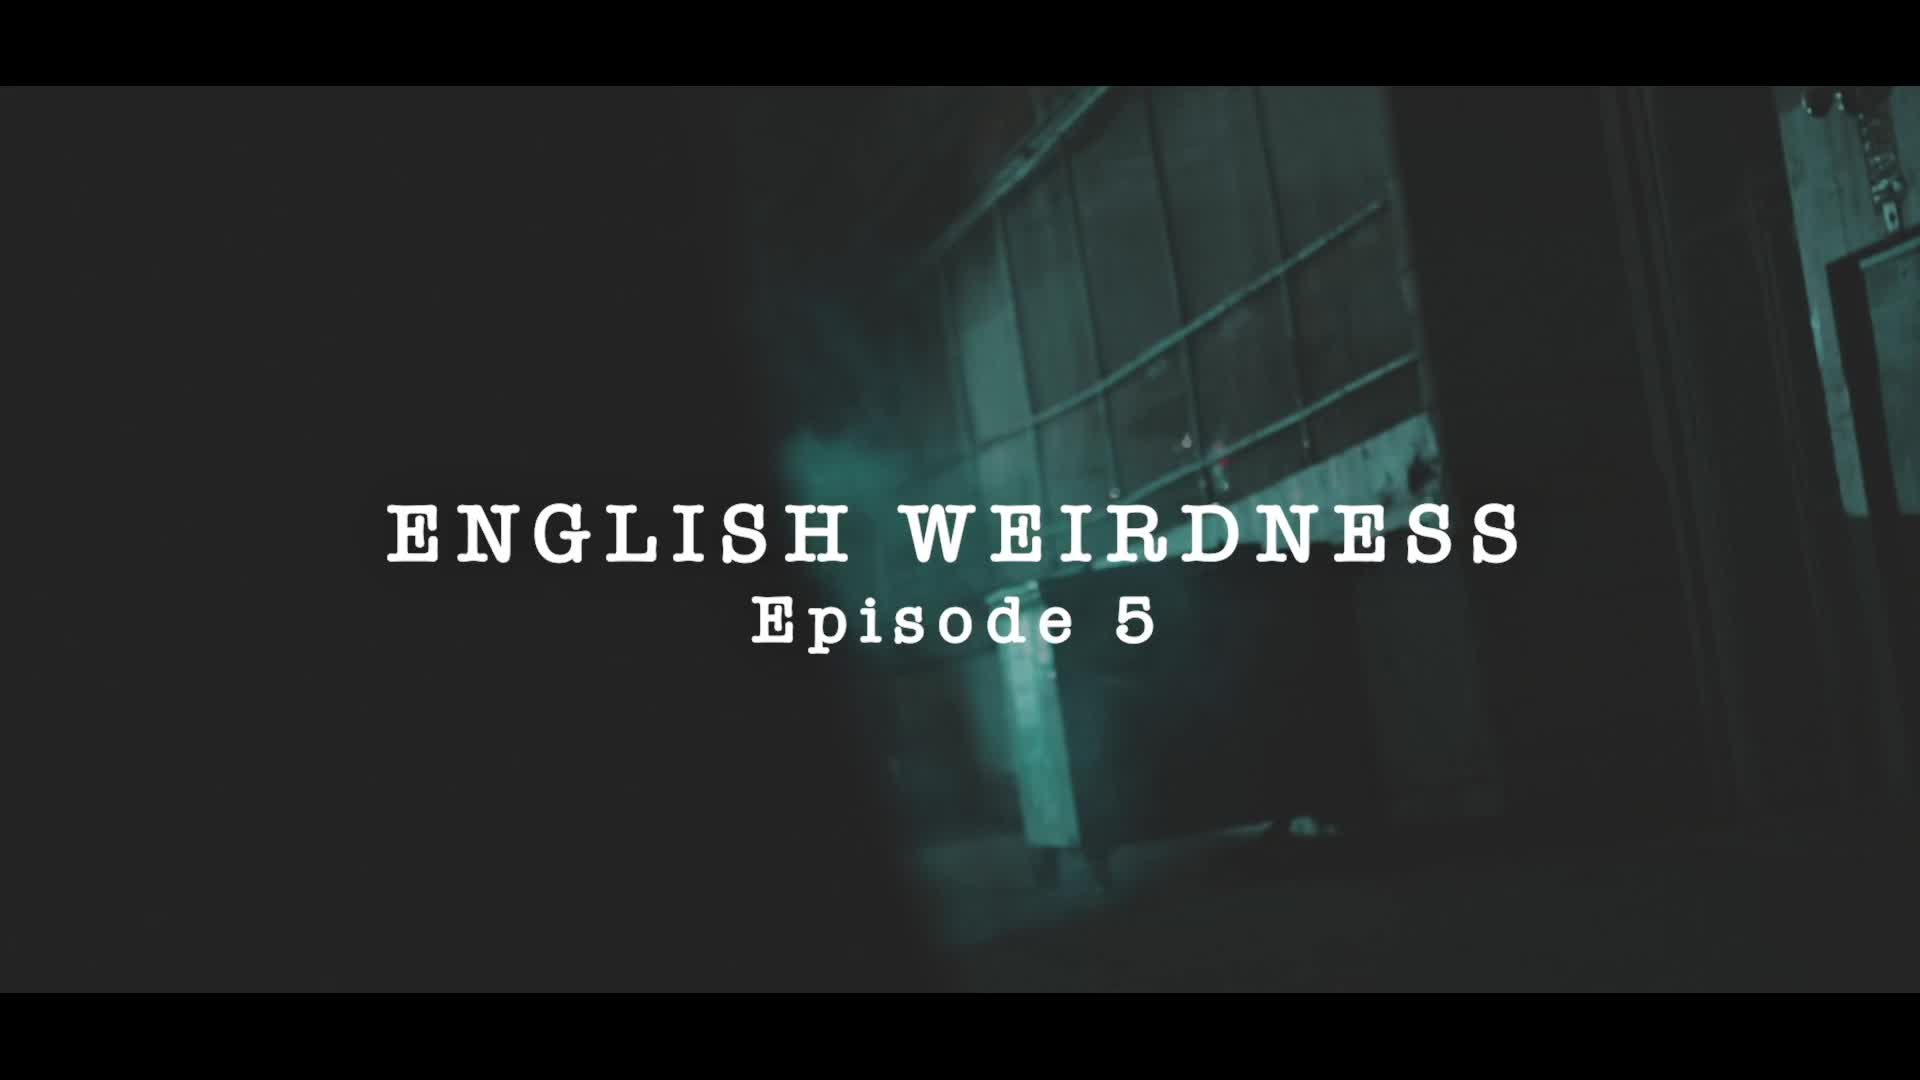 English Weirdness, Episode 4